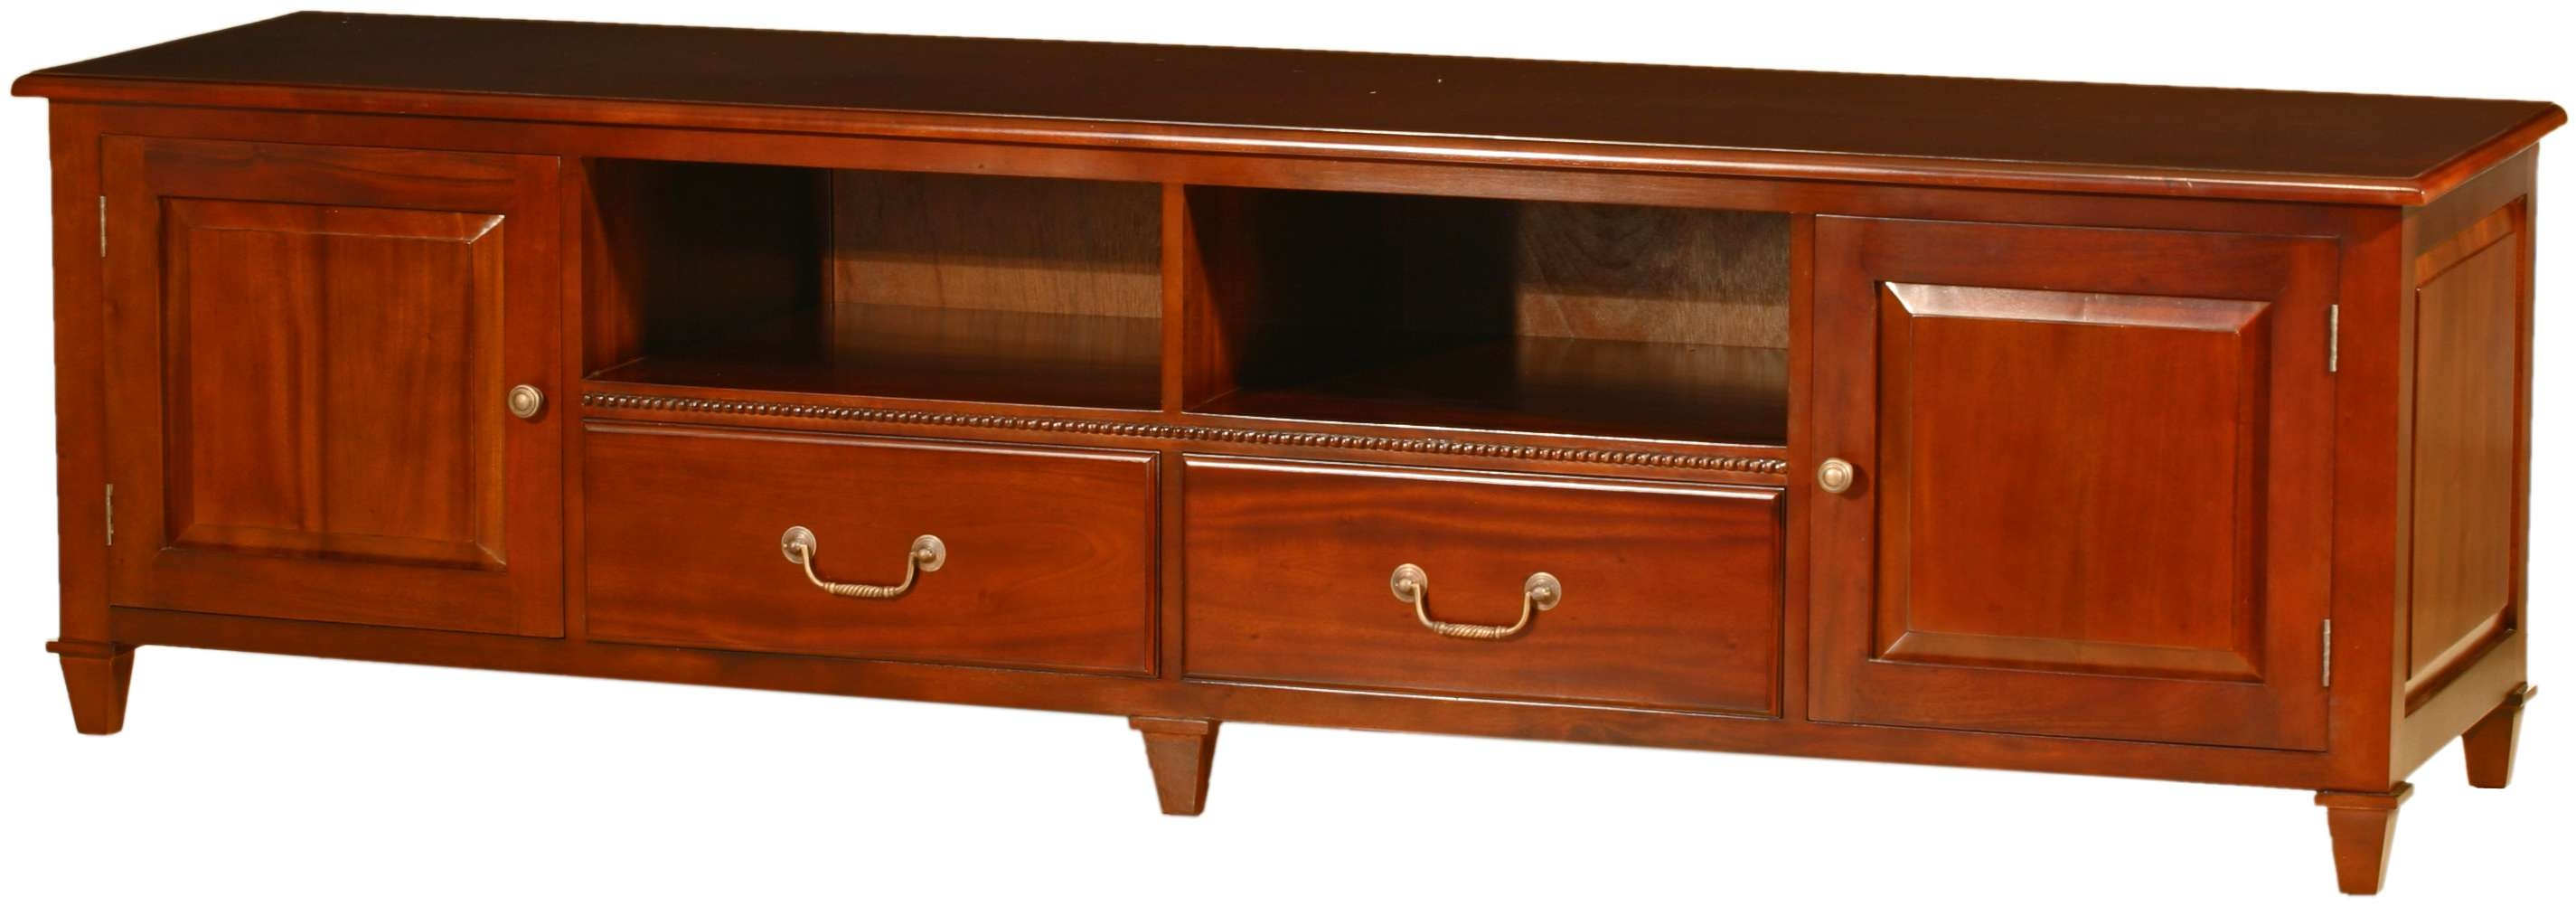 Topolansky | Product Categories | Tv Stands & Cabinets In Plasma Tv Stands (View 13 of 15)